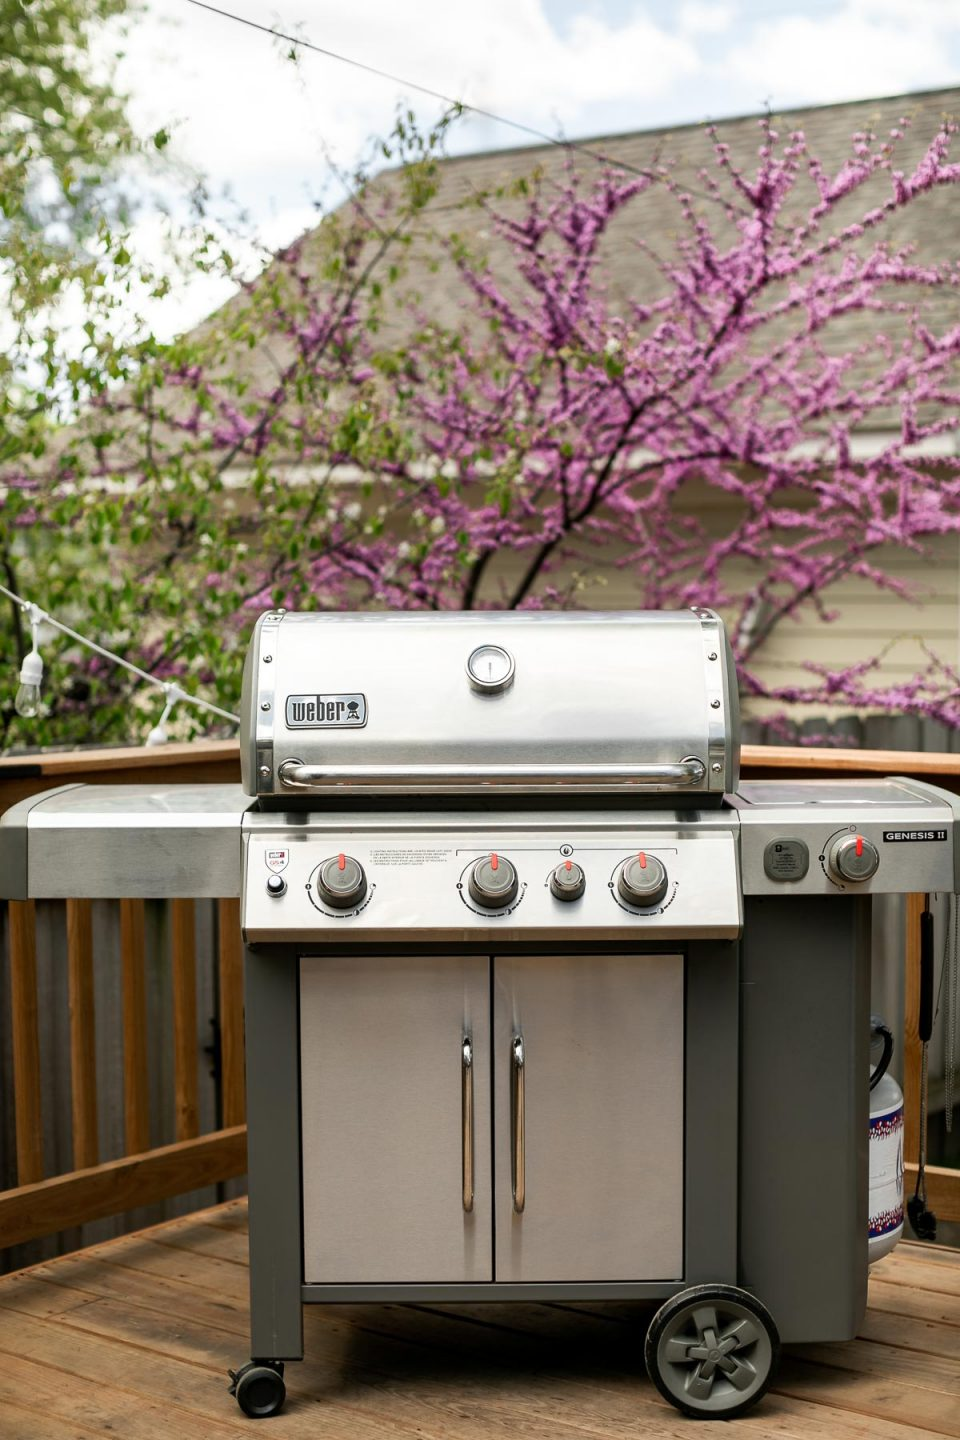 Weber Genesis II gas grill shown on deck. In the background, a blossoming tree and a house with beige siding.